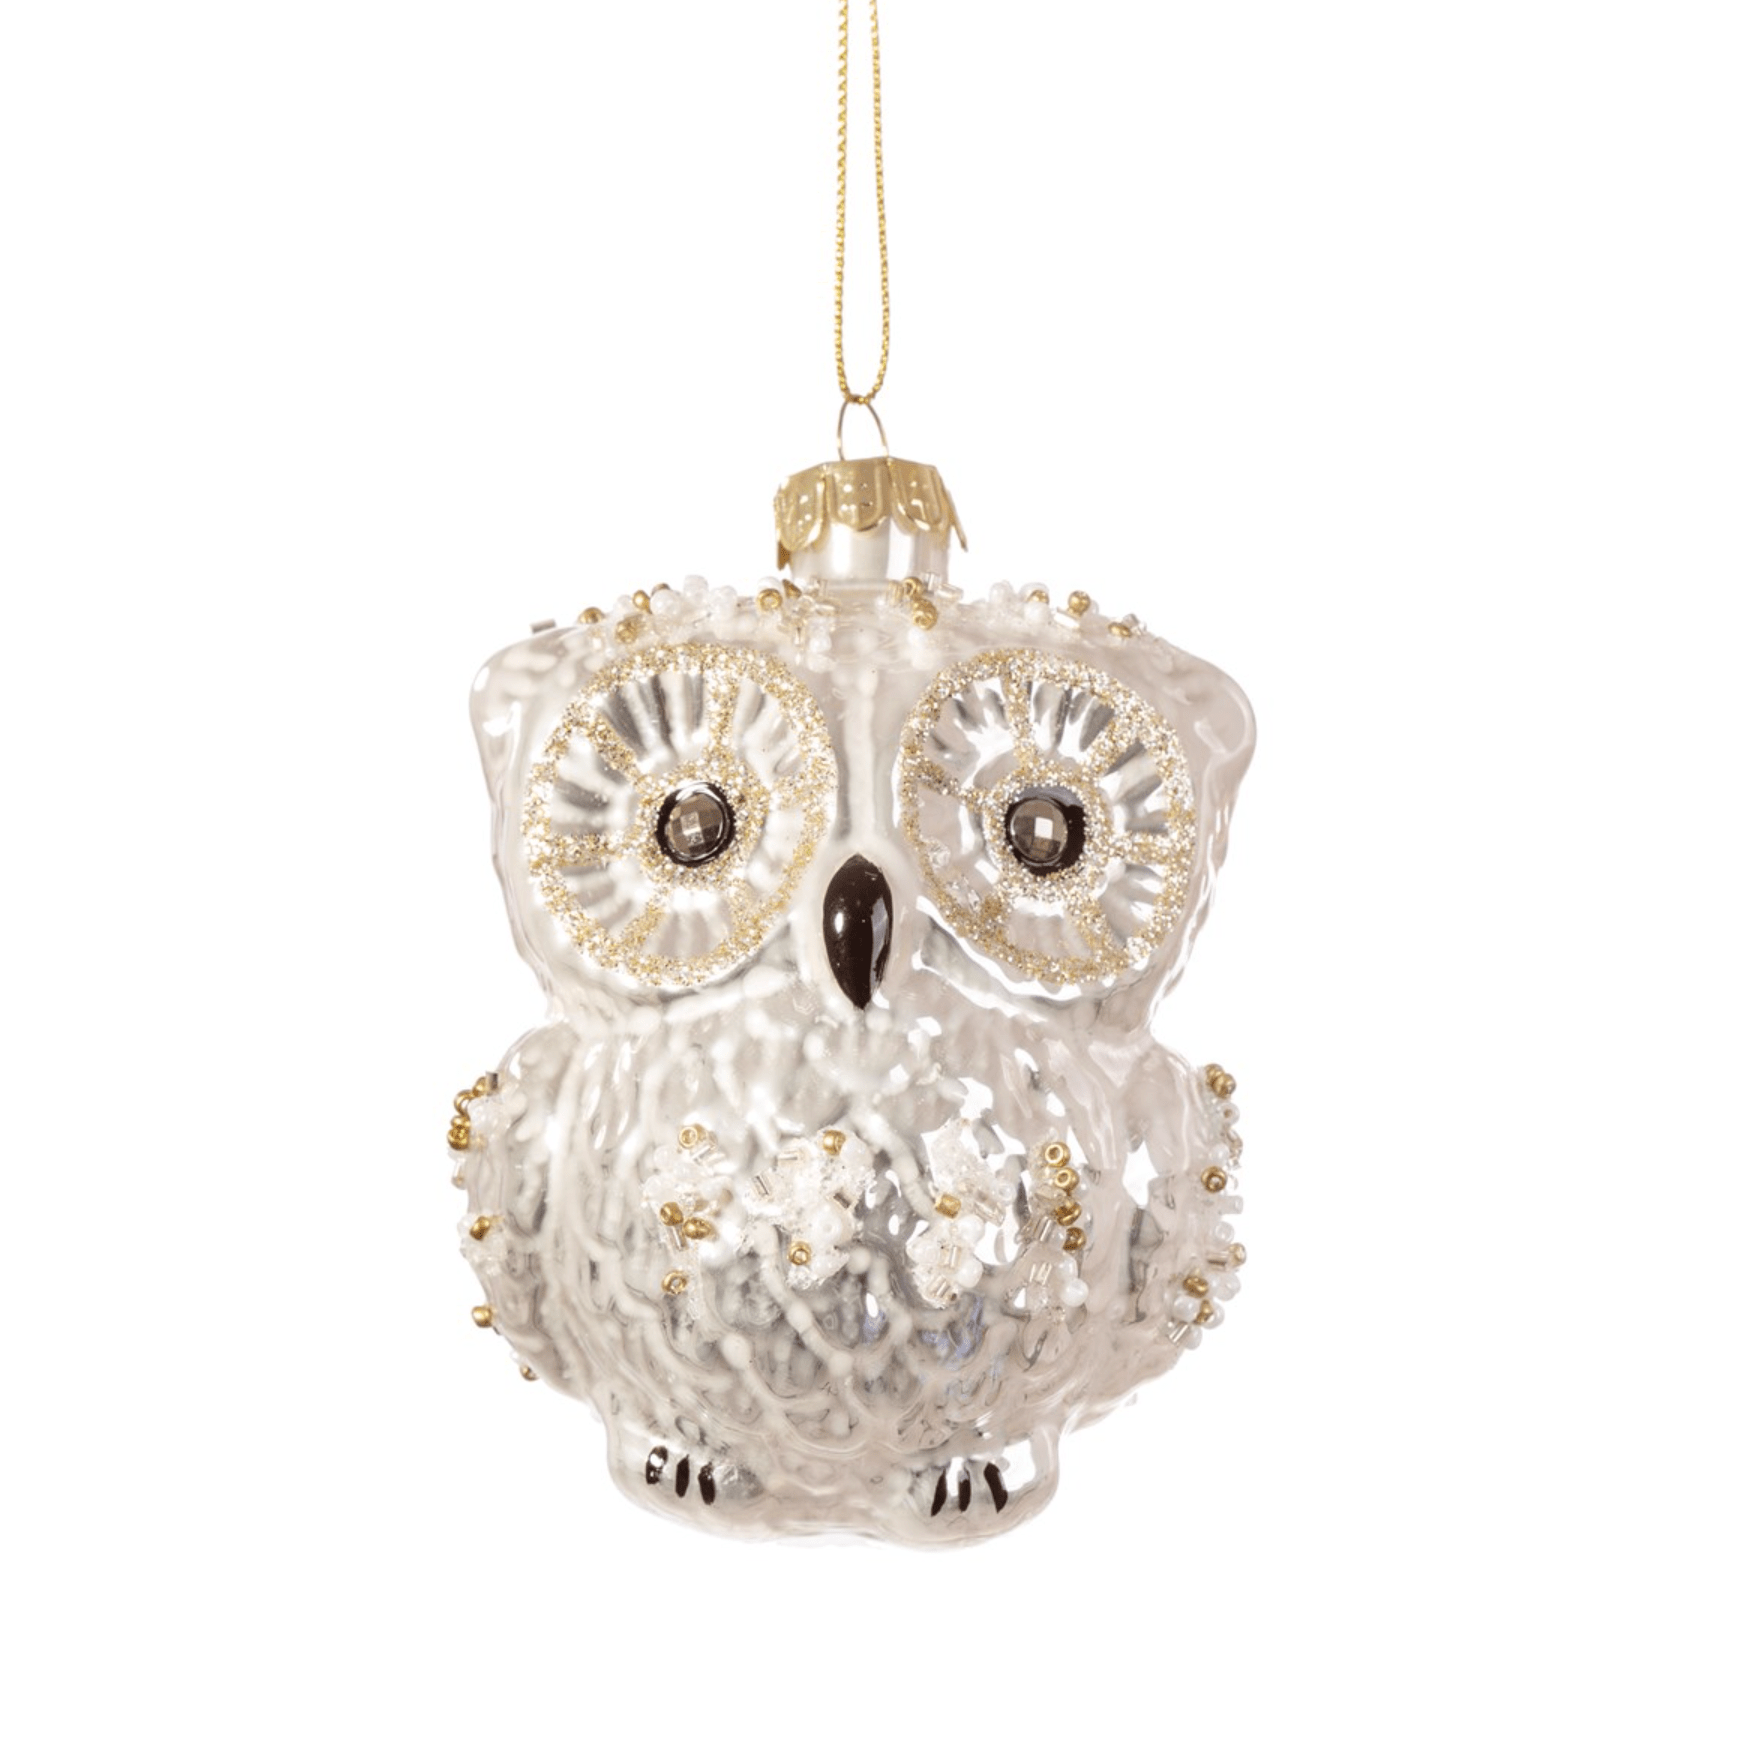 Snowy Owl Shaped Bauble By Sass & Belle